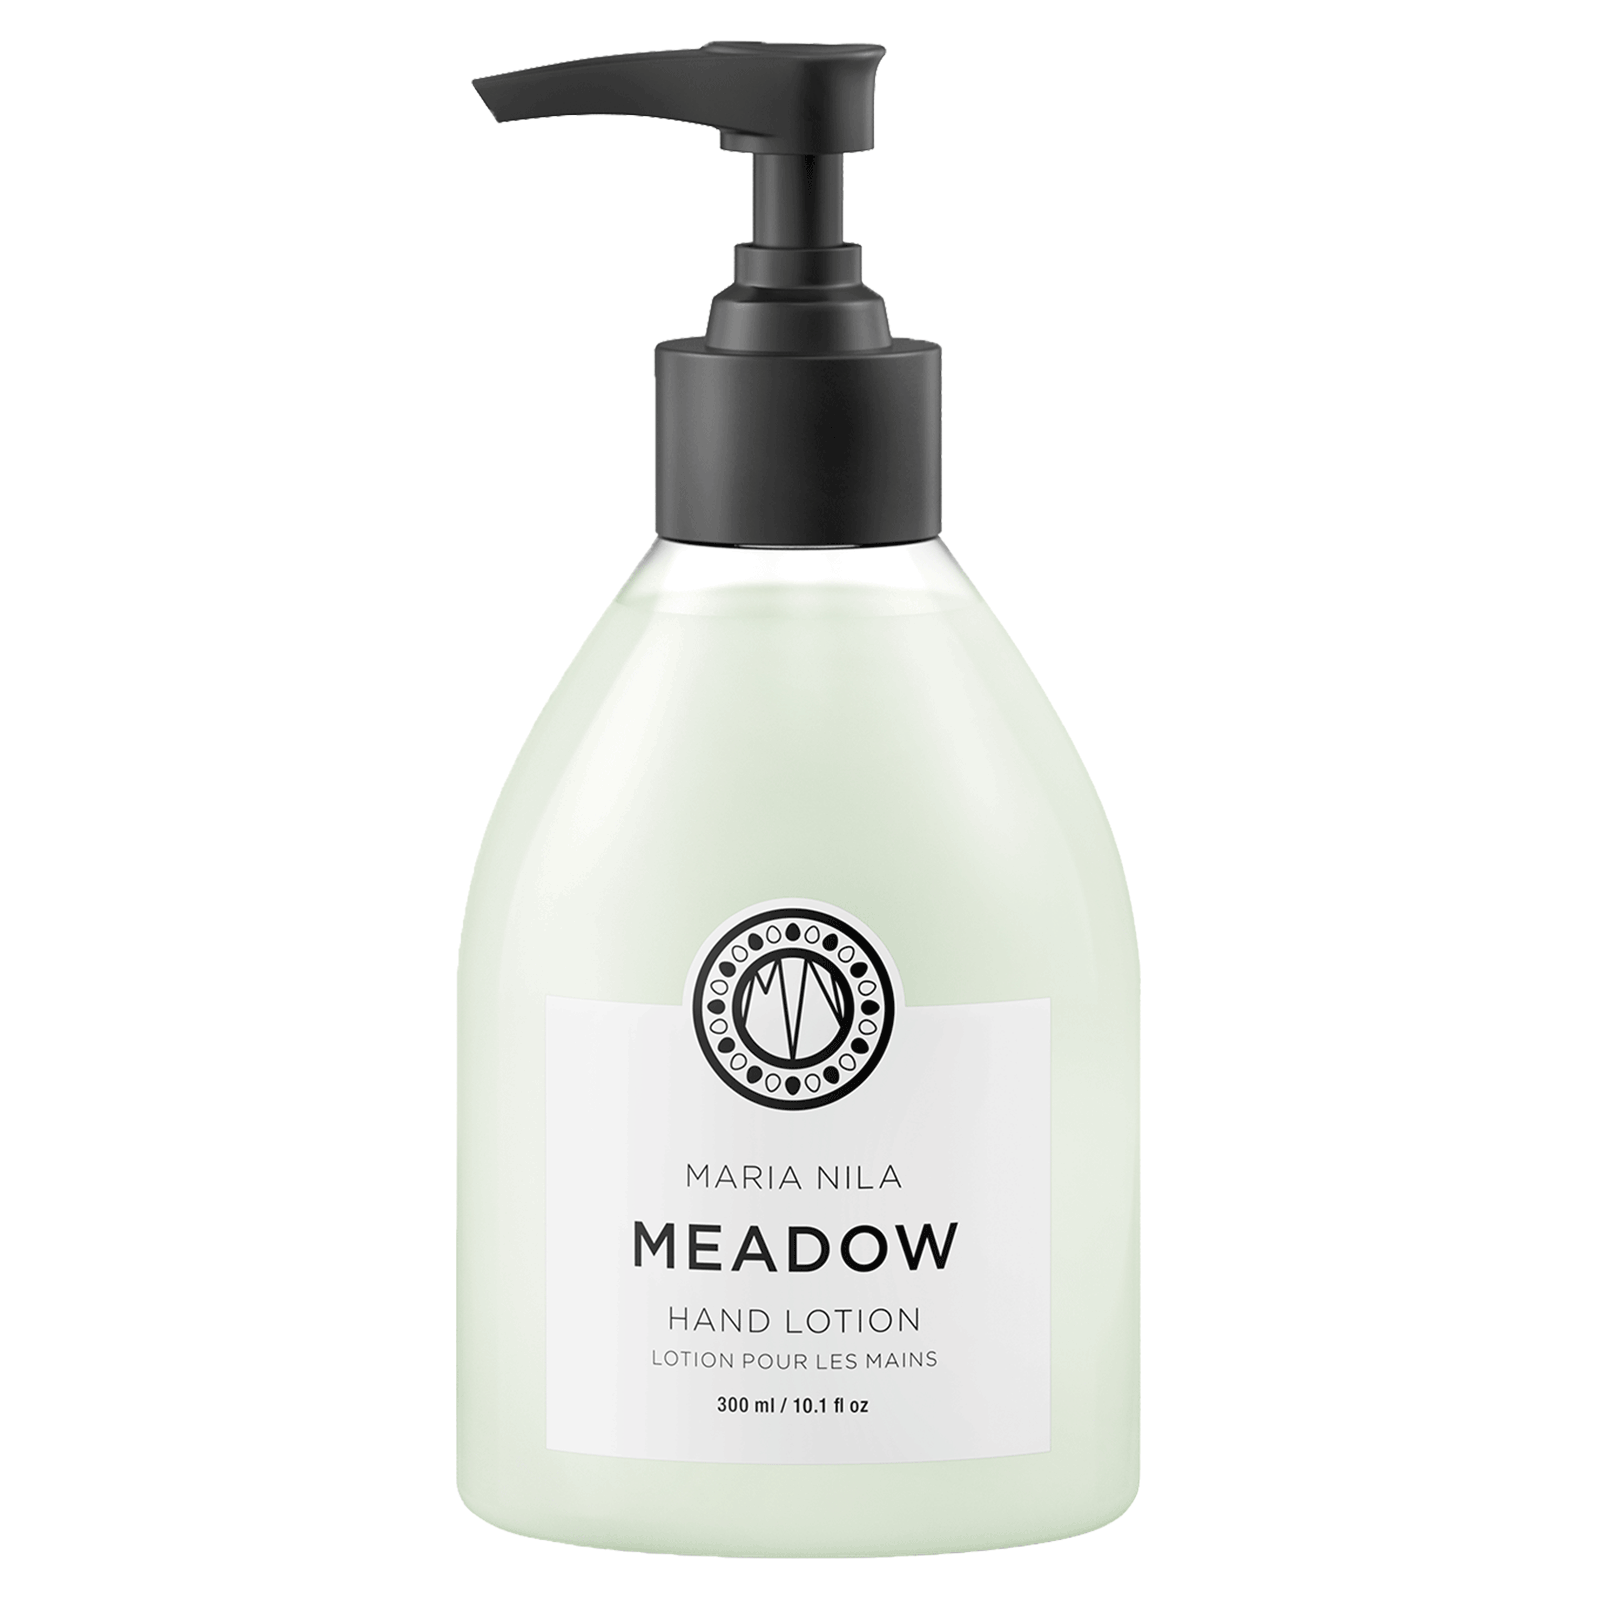 Meadow Hand Lotion